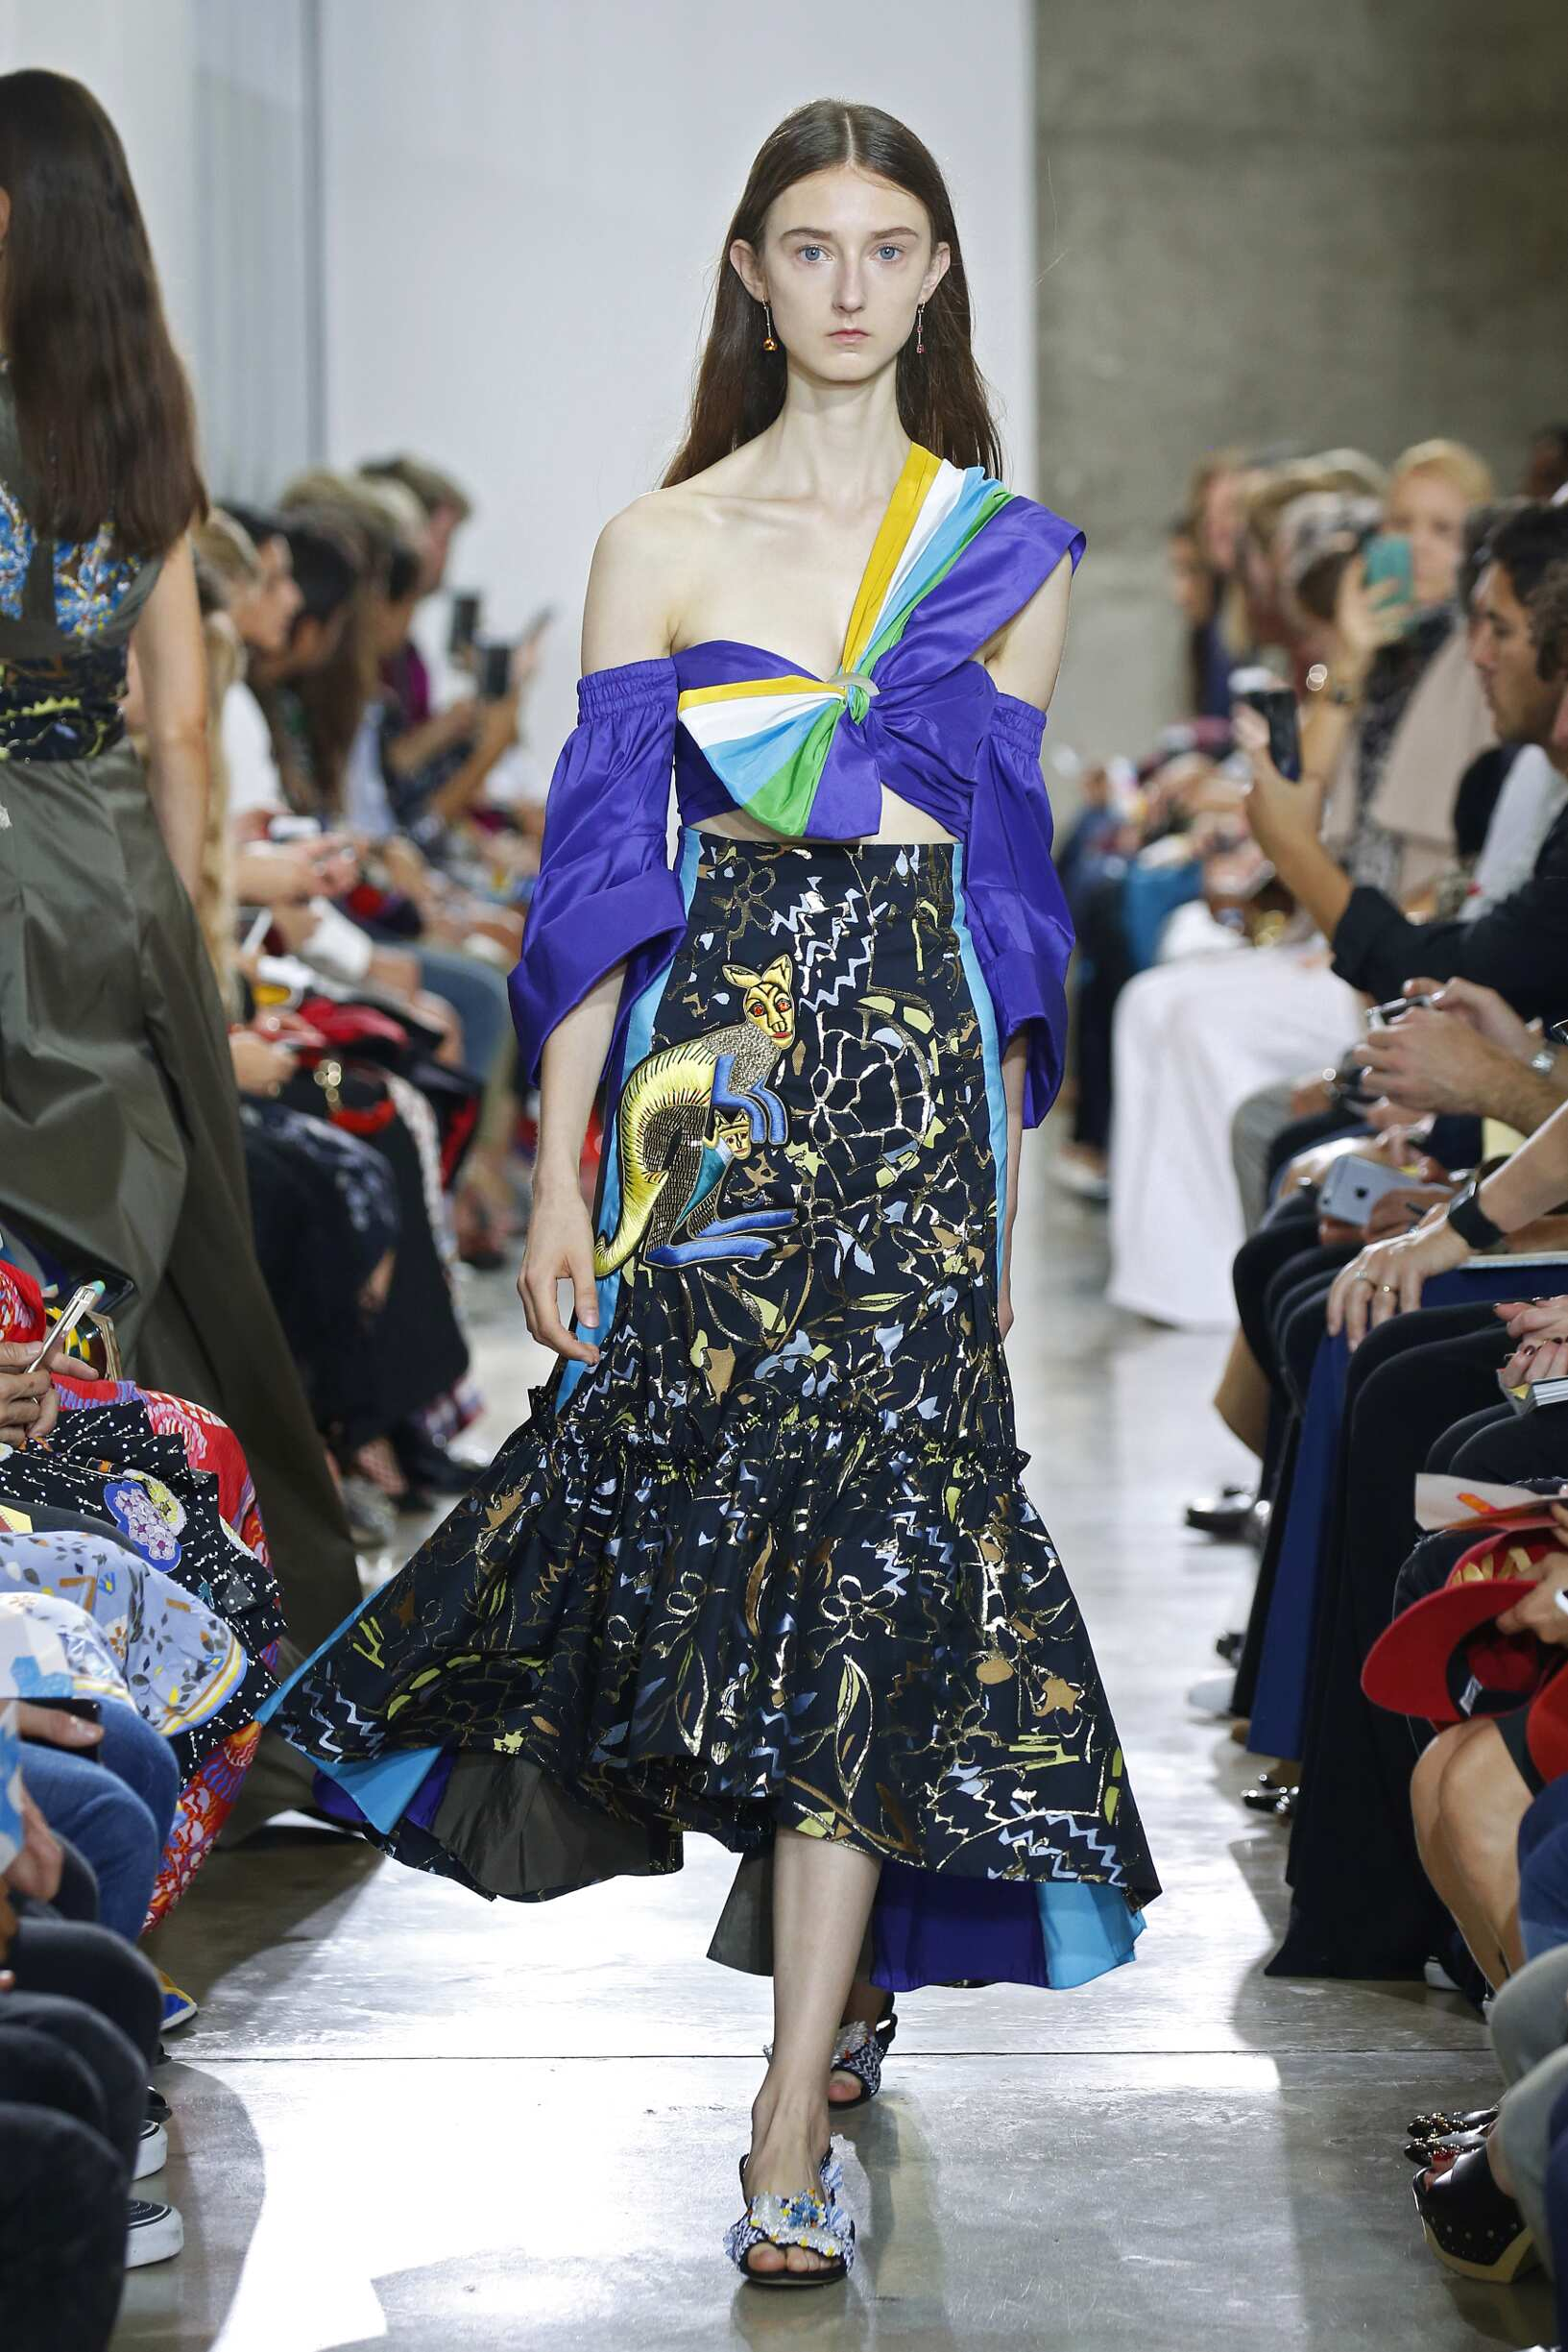 Peter Pilotto Summer 2017 Catwalk